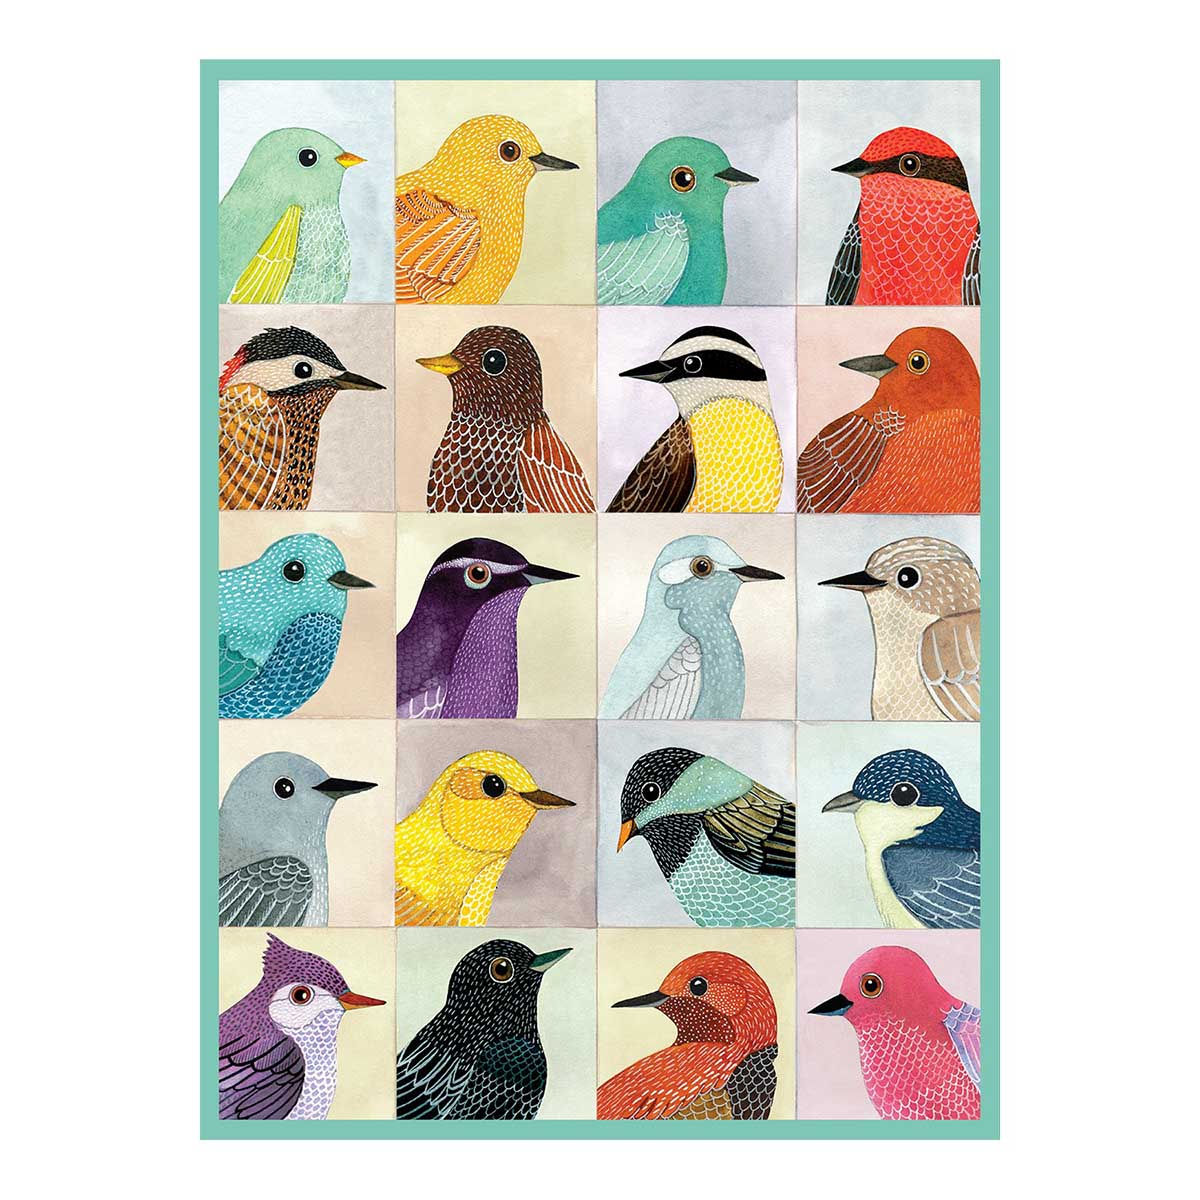 Avian Friends Birds Jigsaw Puzzle